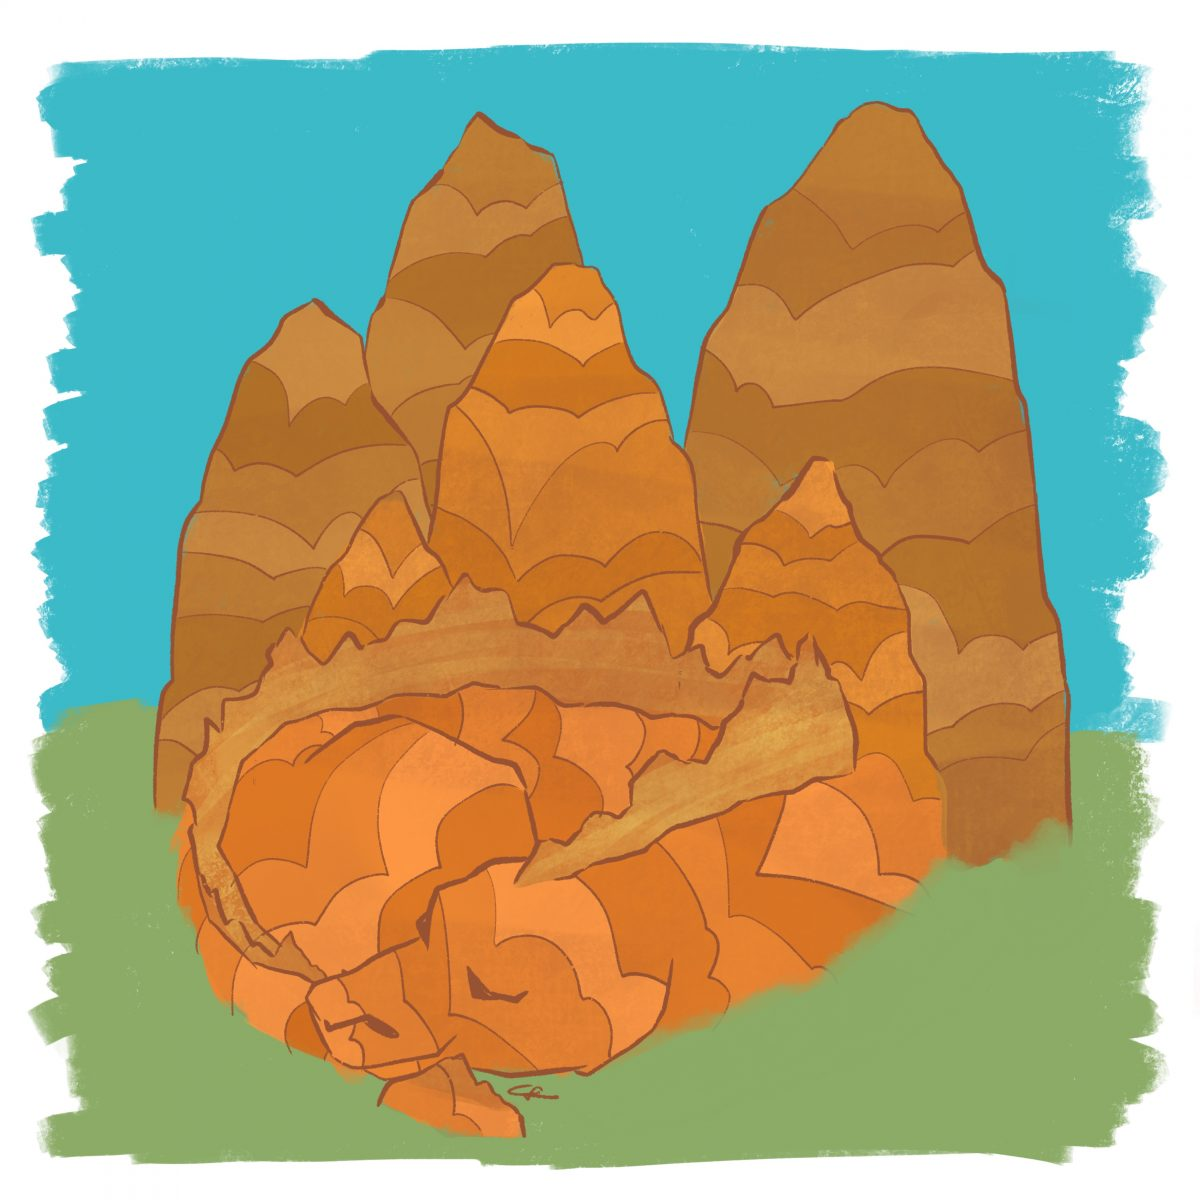 Image of a sleeping mountain dragon